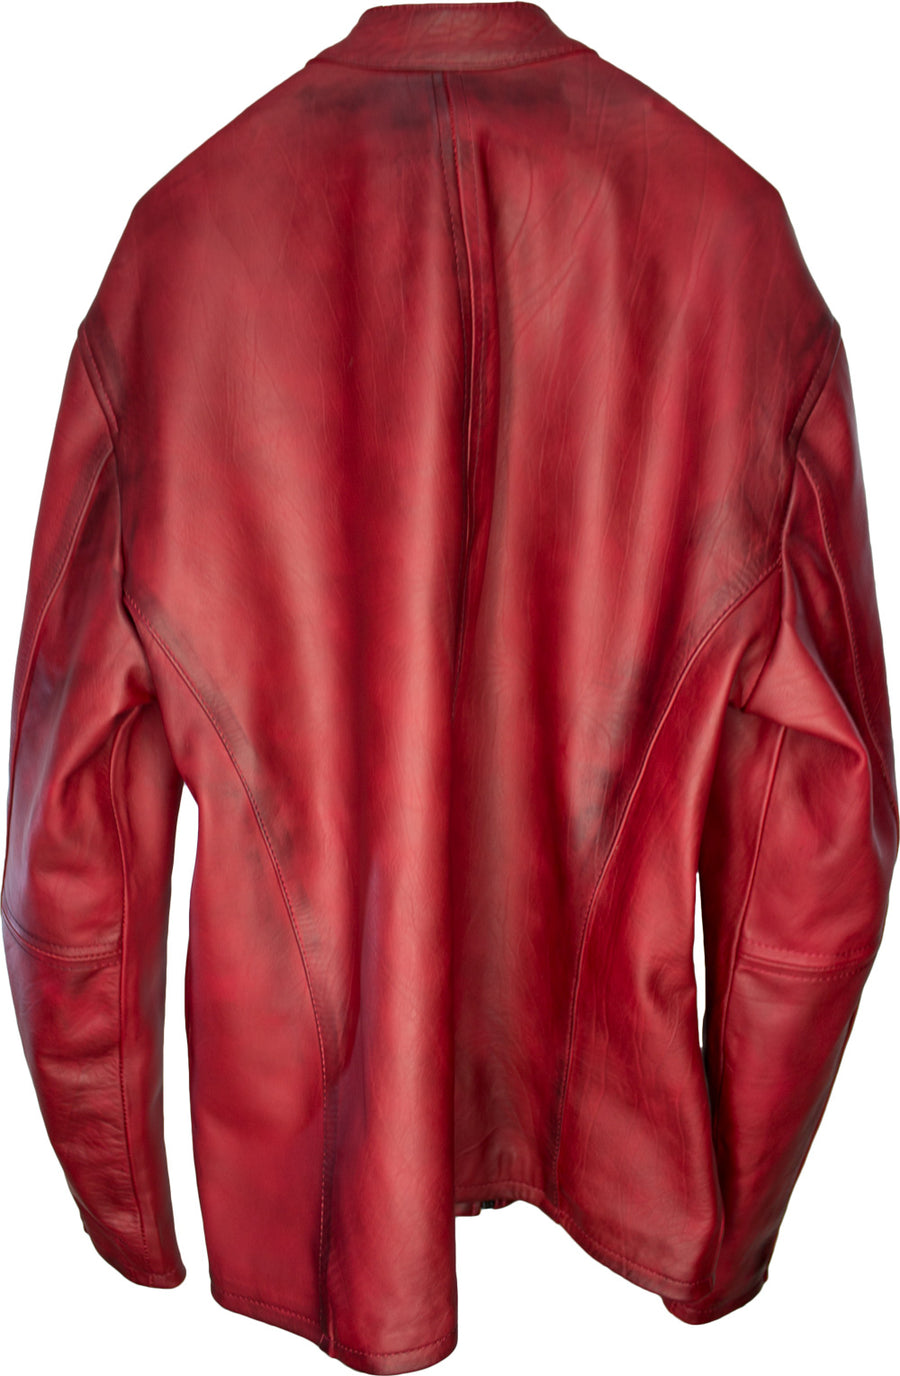 R79 HB Leather Jacket Luxury Cafe Racer Red Vintage Fit Hand Burnished